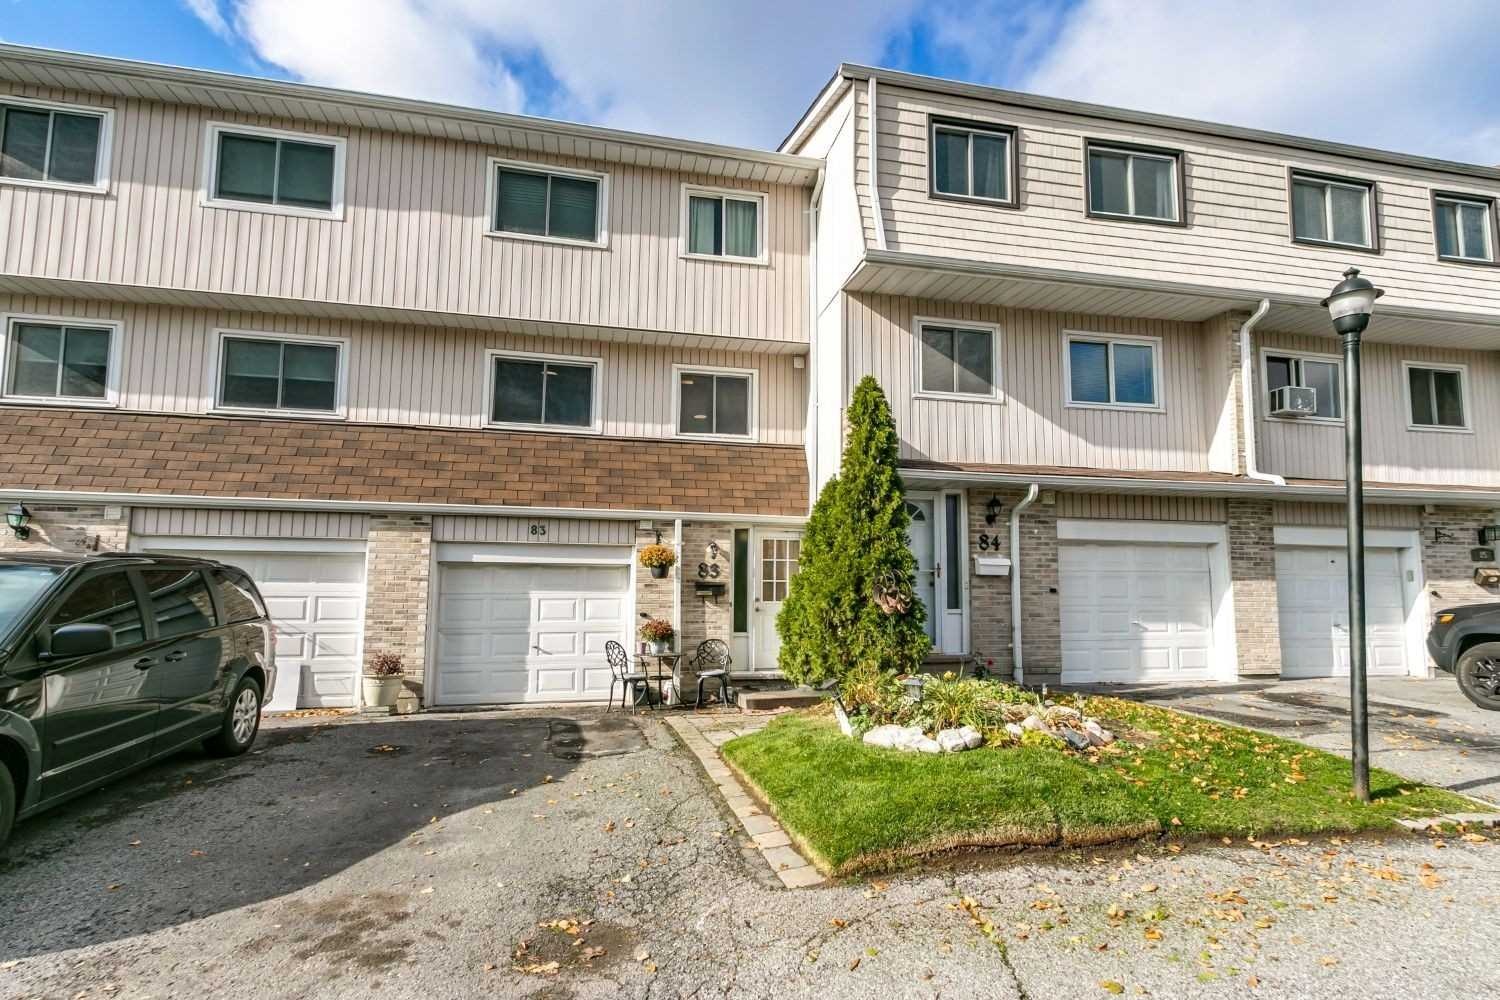 1975 Rosefield Rd, Pickering, Ontario L1V3E3, 3 Bedrooms Bedrooms, 7 Rooms Rooms,2 BathroomsBathrooms,Condo Townhouse,For Sale,Rosefield,E4971385